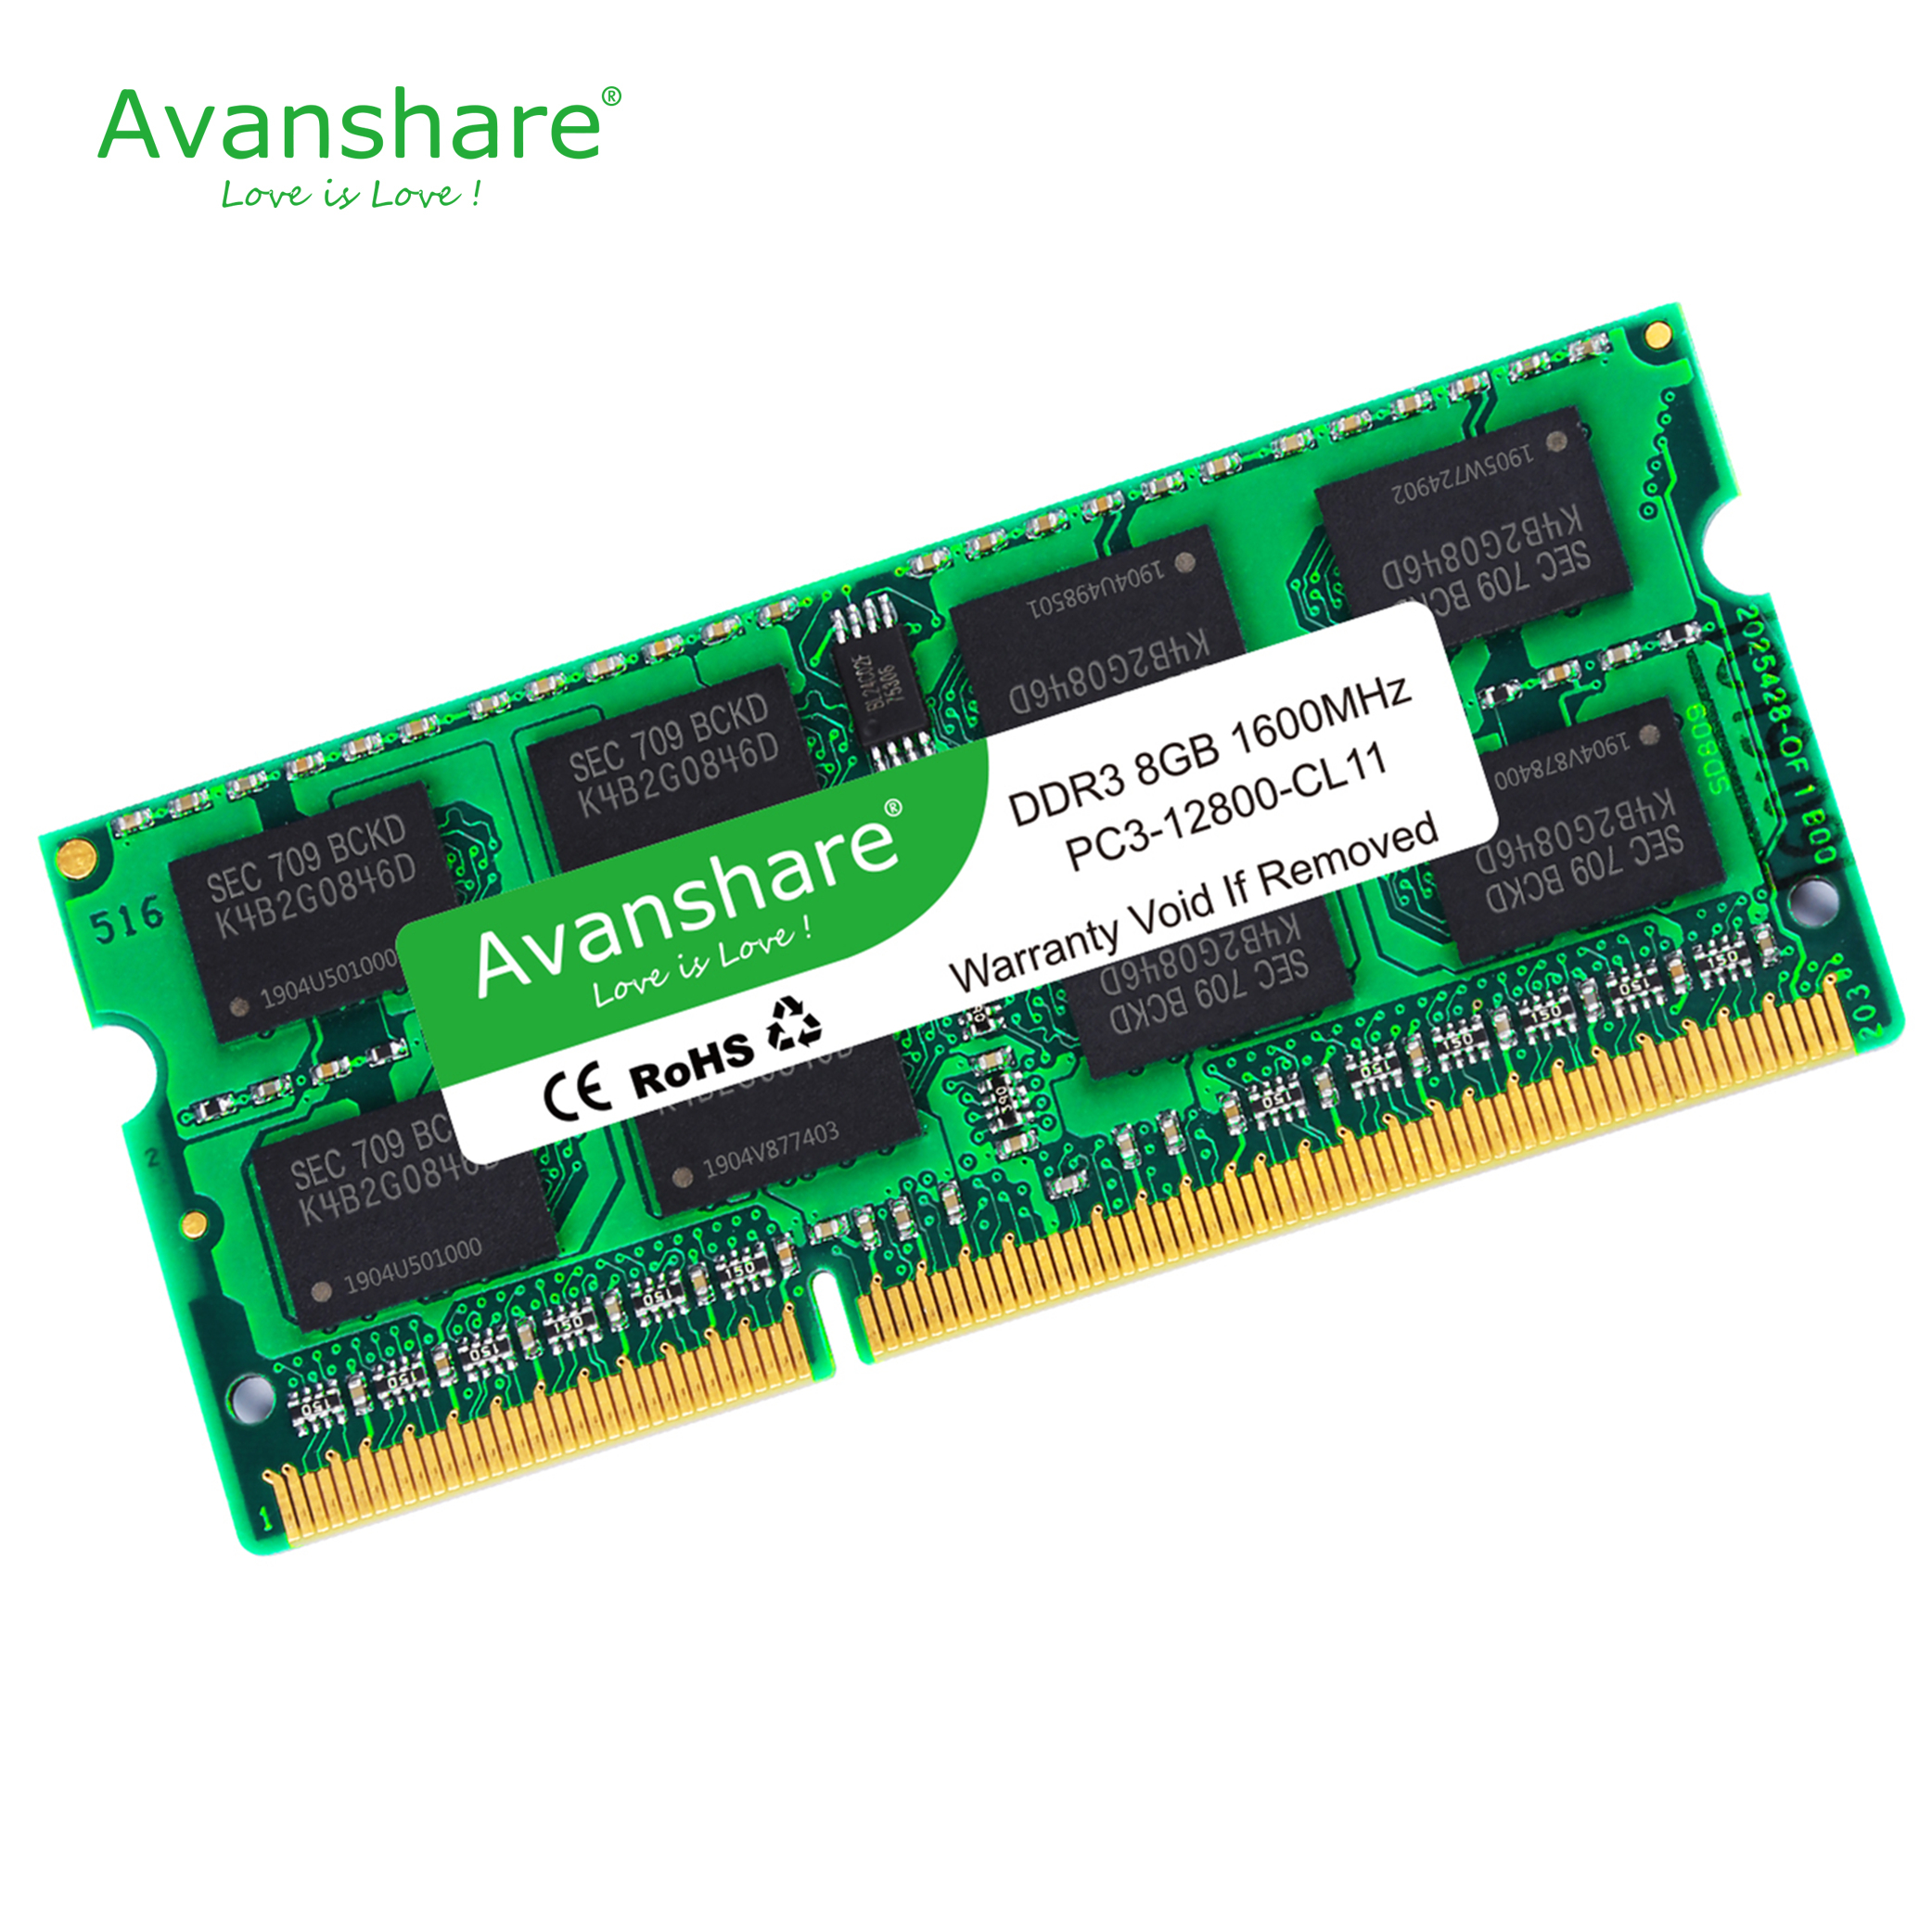 memory <font><b>ddr3</b></font> <font><b>8gb</b></font> for laptop 1600MHz sodimm macbook <font><b>ram</b></font> ddr3l 1600 compatible <font><b>ddr3</b></font> laptop 4gb 1333MHz sdram <font><b>1066mhz</b></font> by Avanshare image